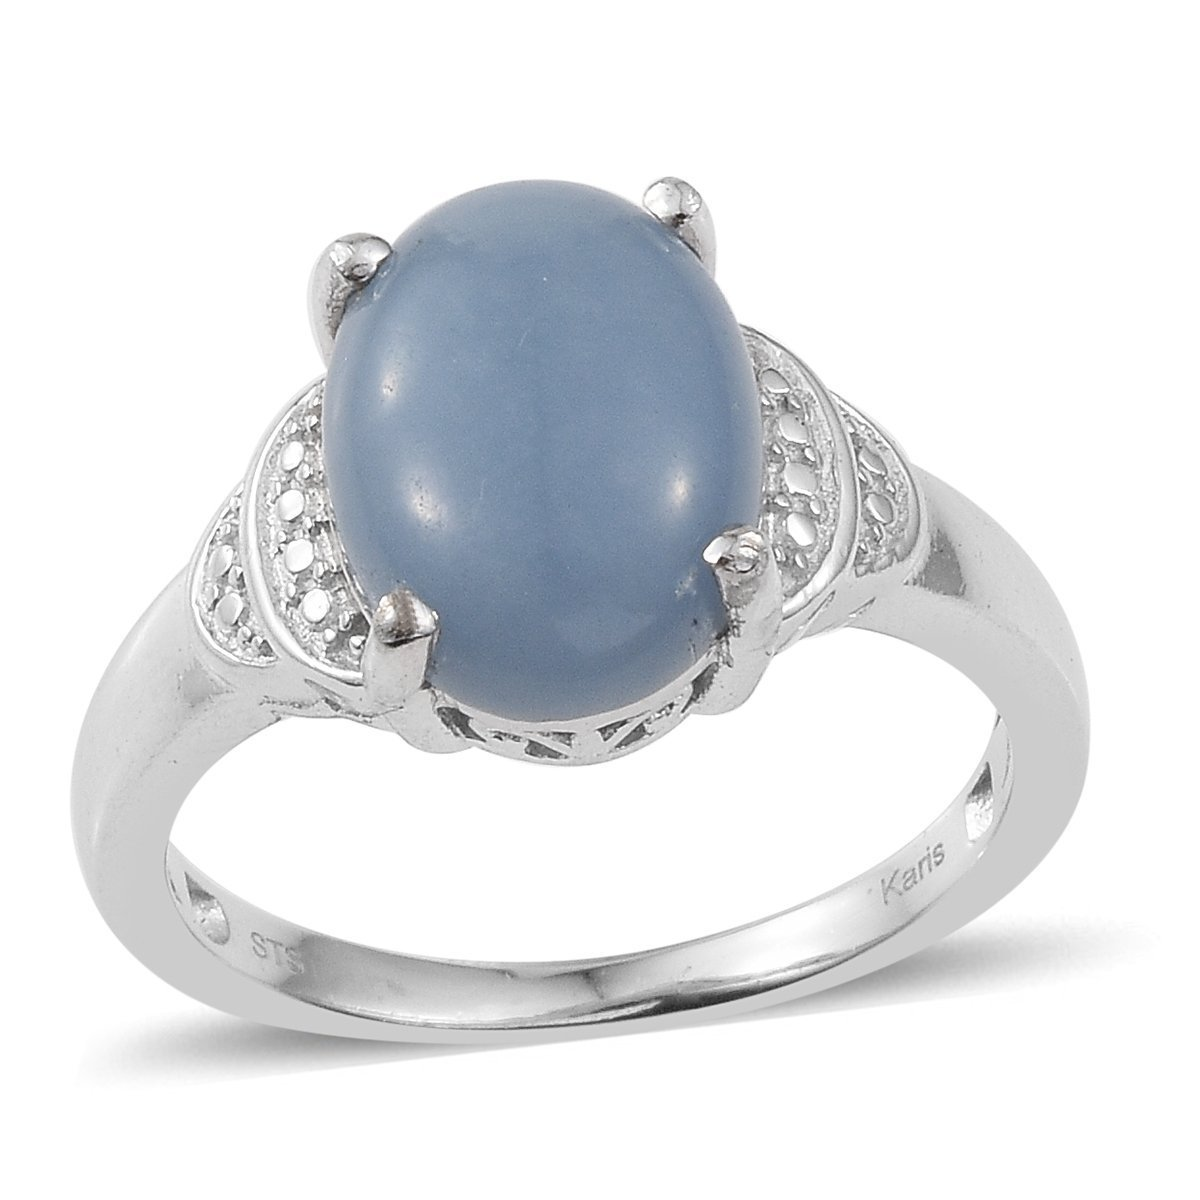 Oval Angelite Fashion Ring for Women Size 7